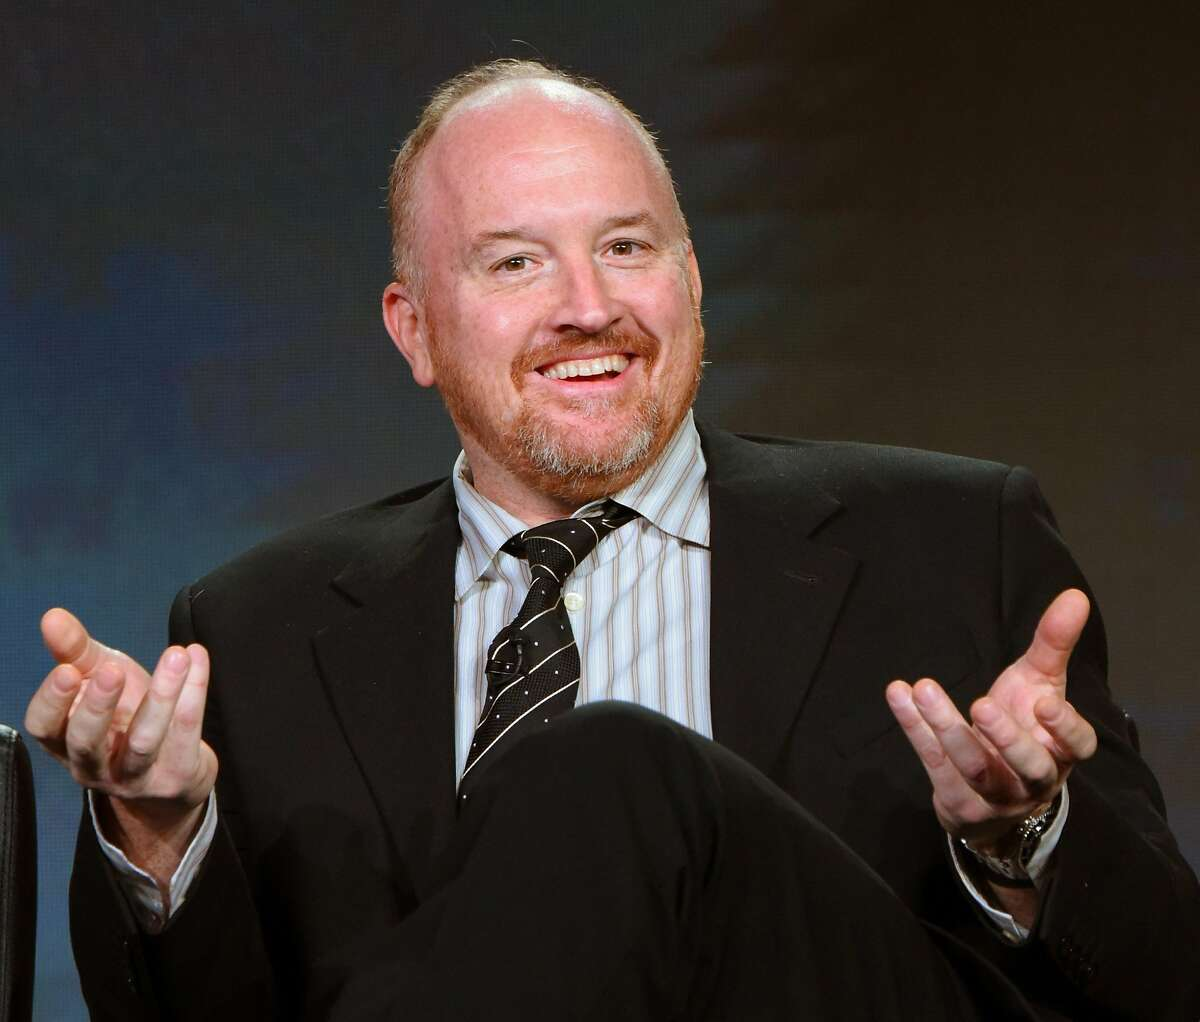 Louis C.K. is venturing into large venues with his show.